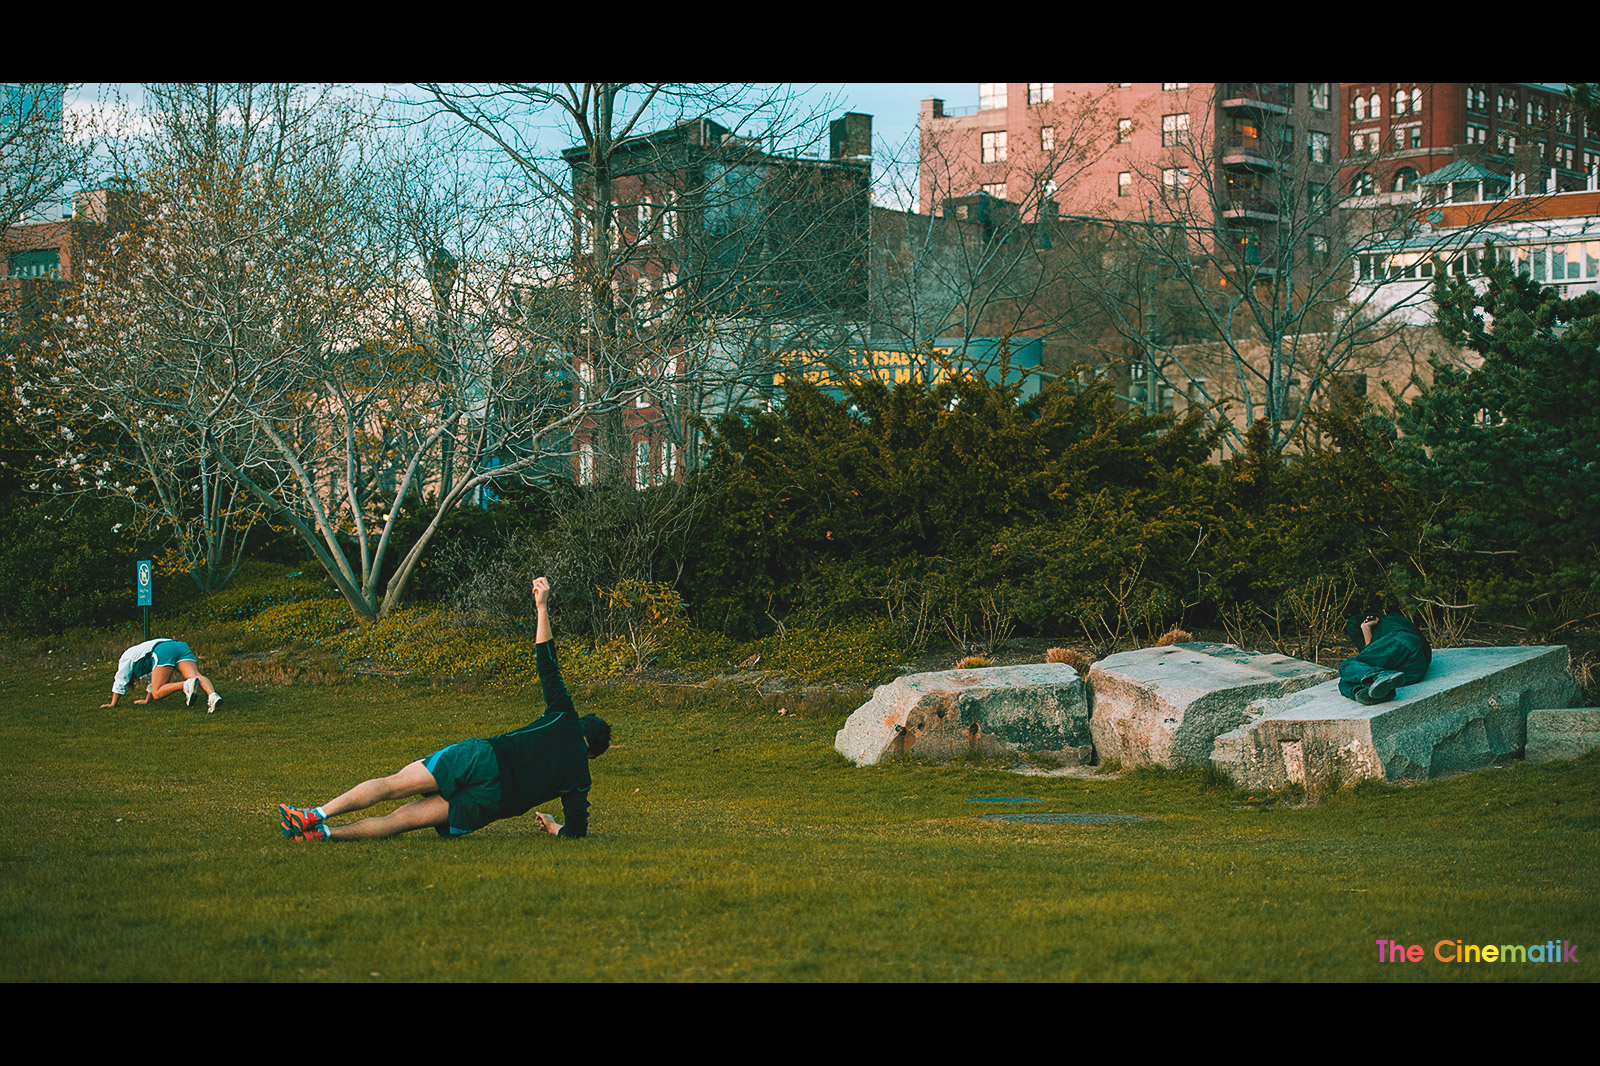 man-and-woman-working-out-close-to-homeless-sliping-on-a-rock-in-New-York-City.jpg